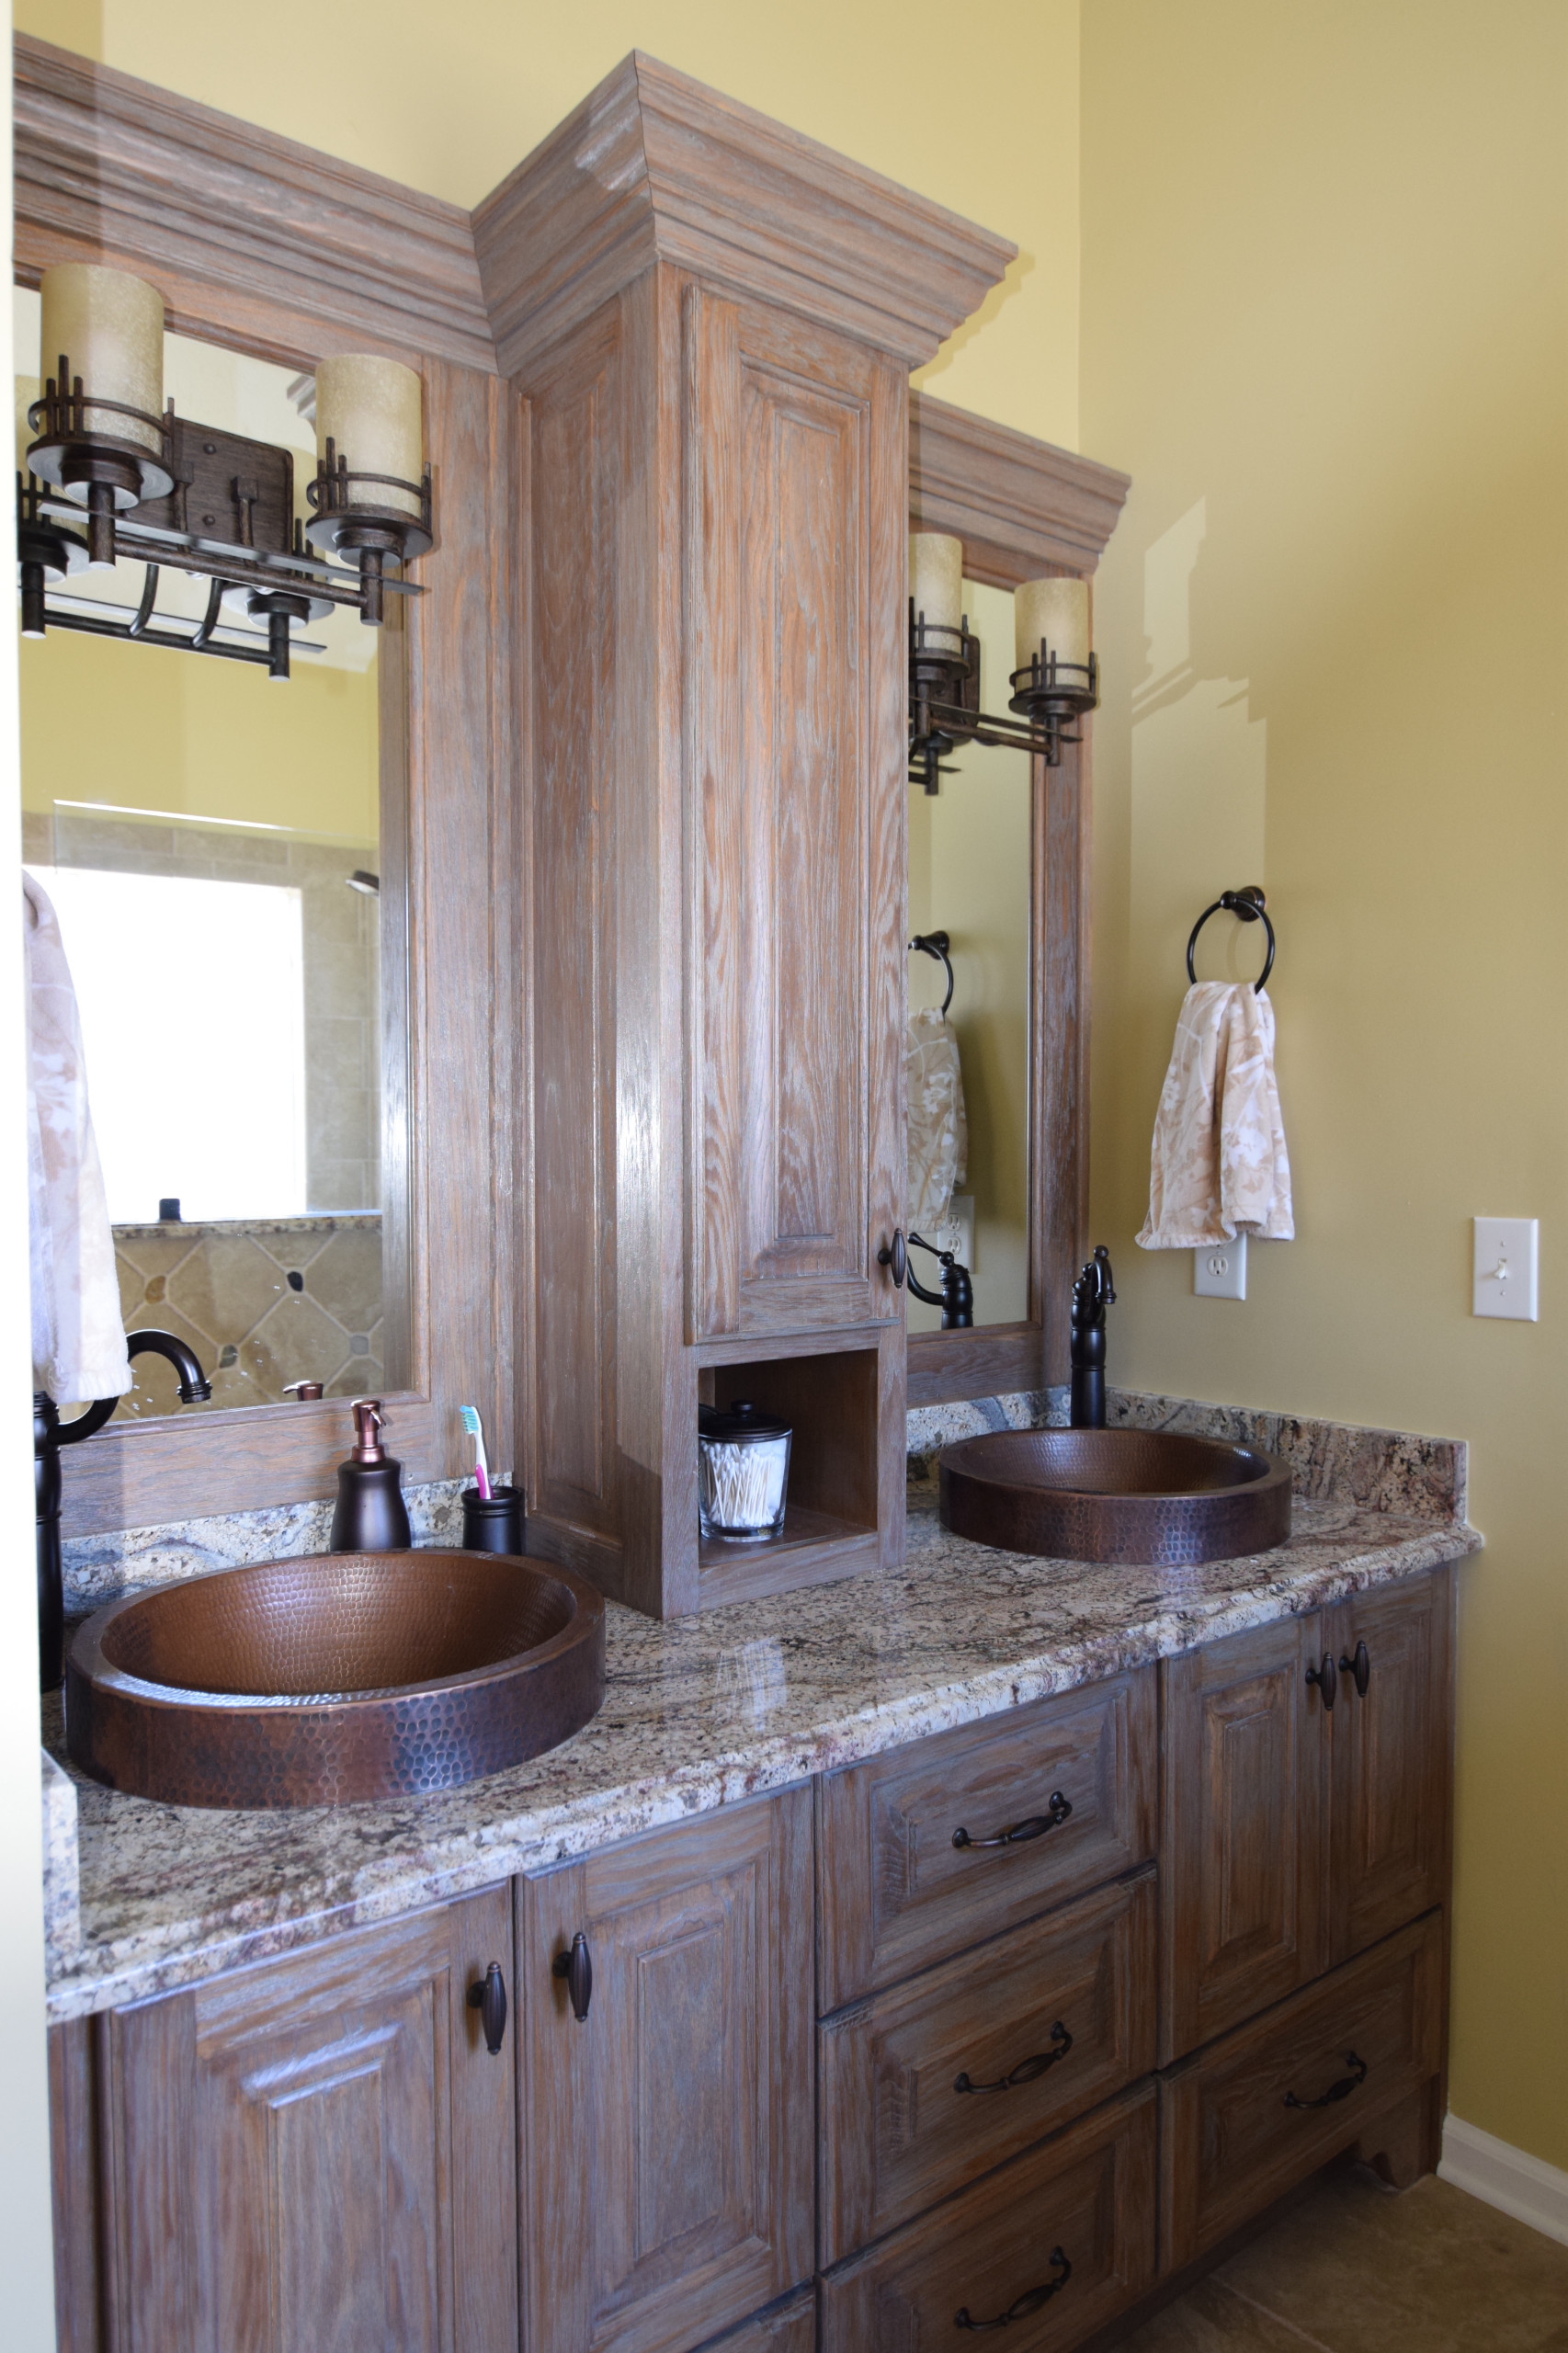 Custom two-process vanity, cabinets and mirrors